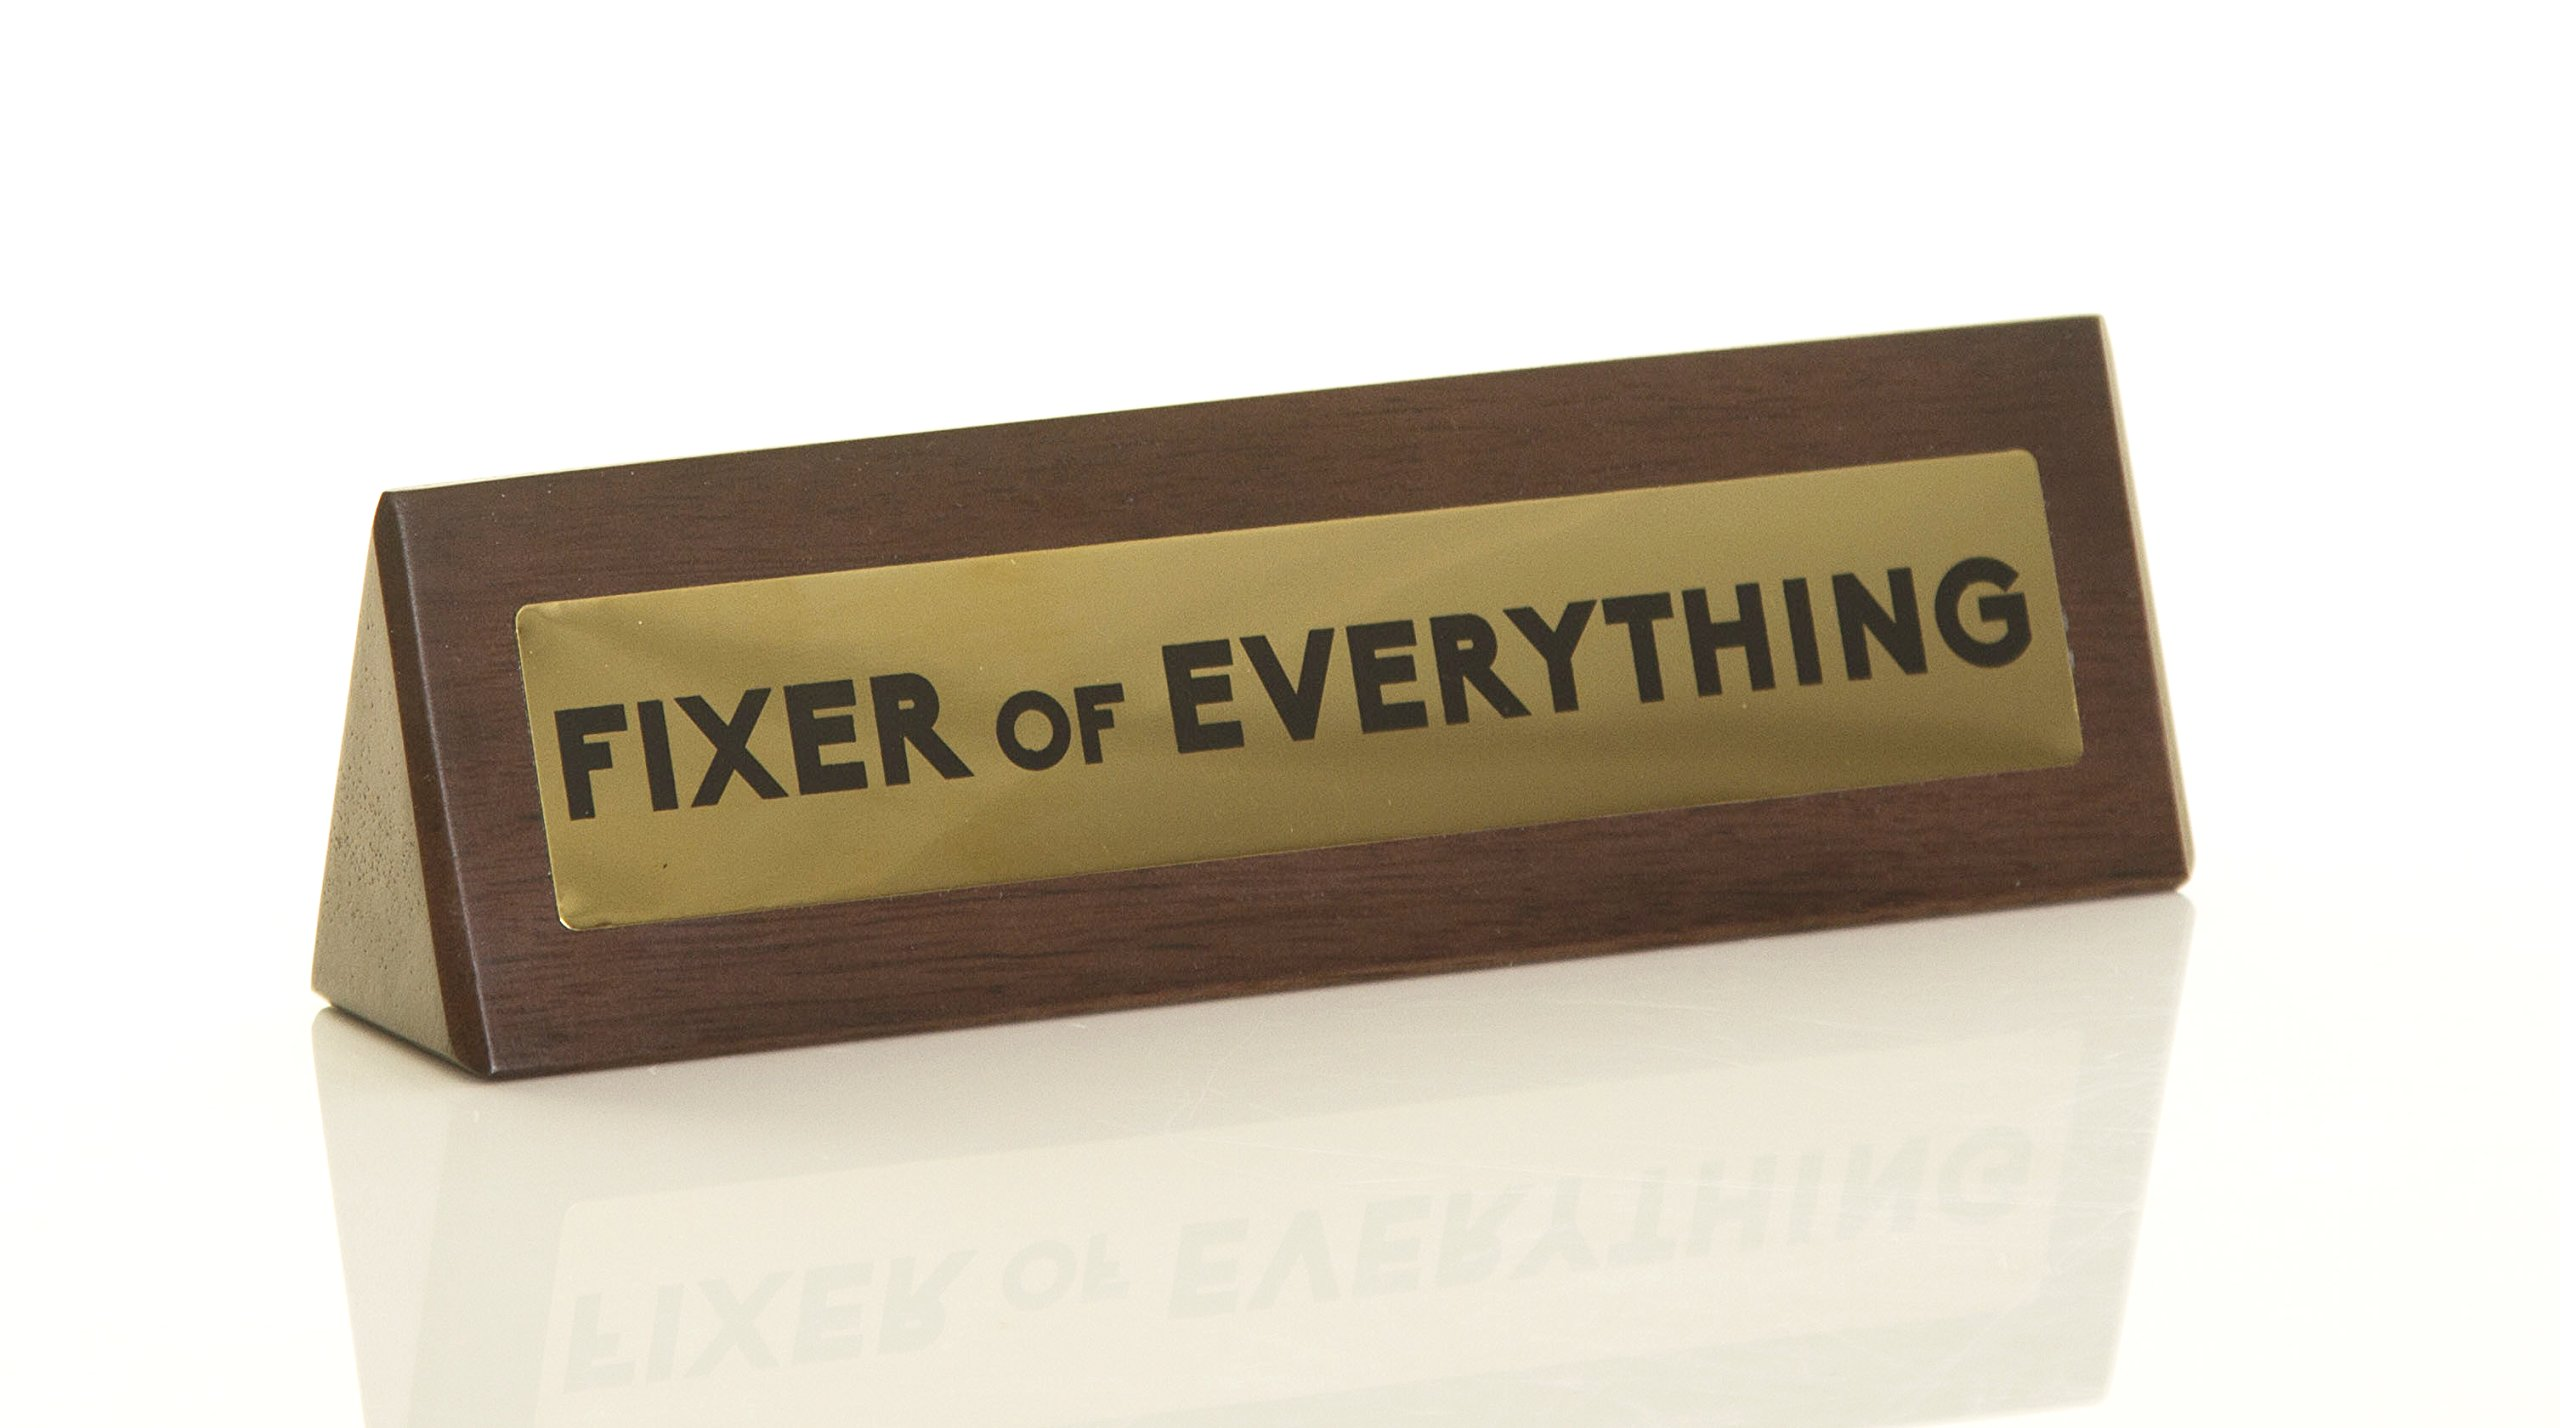 Boxer Gifts 'Fixer of Everything' Novelty Wooden Desk Warning Sign   Office Humour Gift for Colleague Boss Dad   4.5cm x 17.5cm Brown DK1041